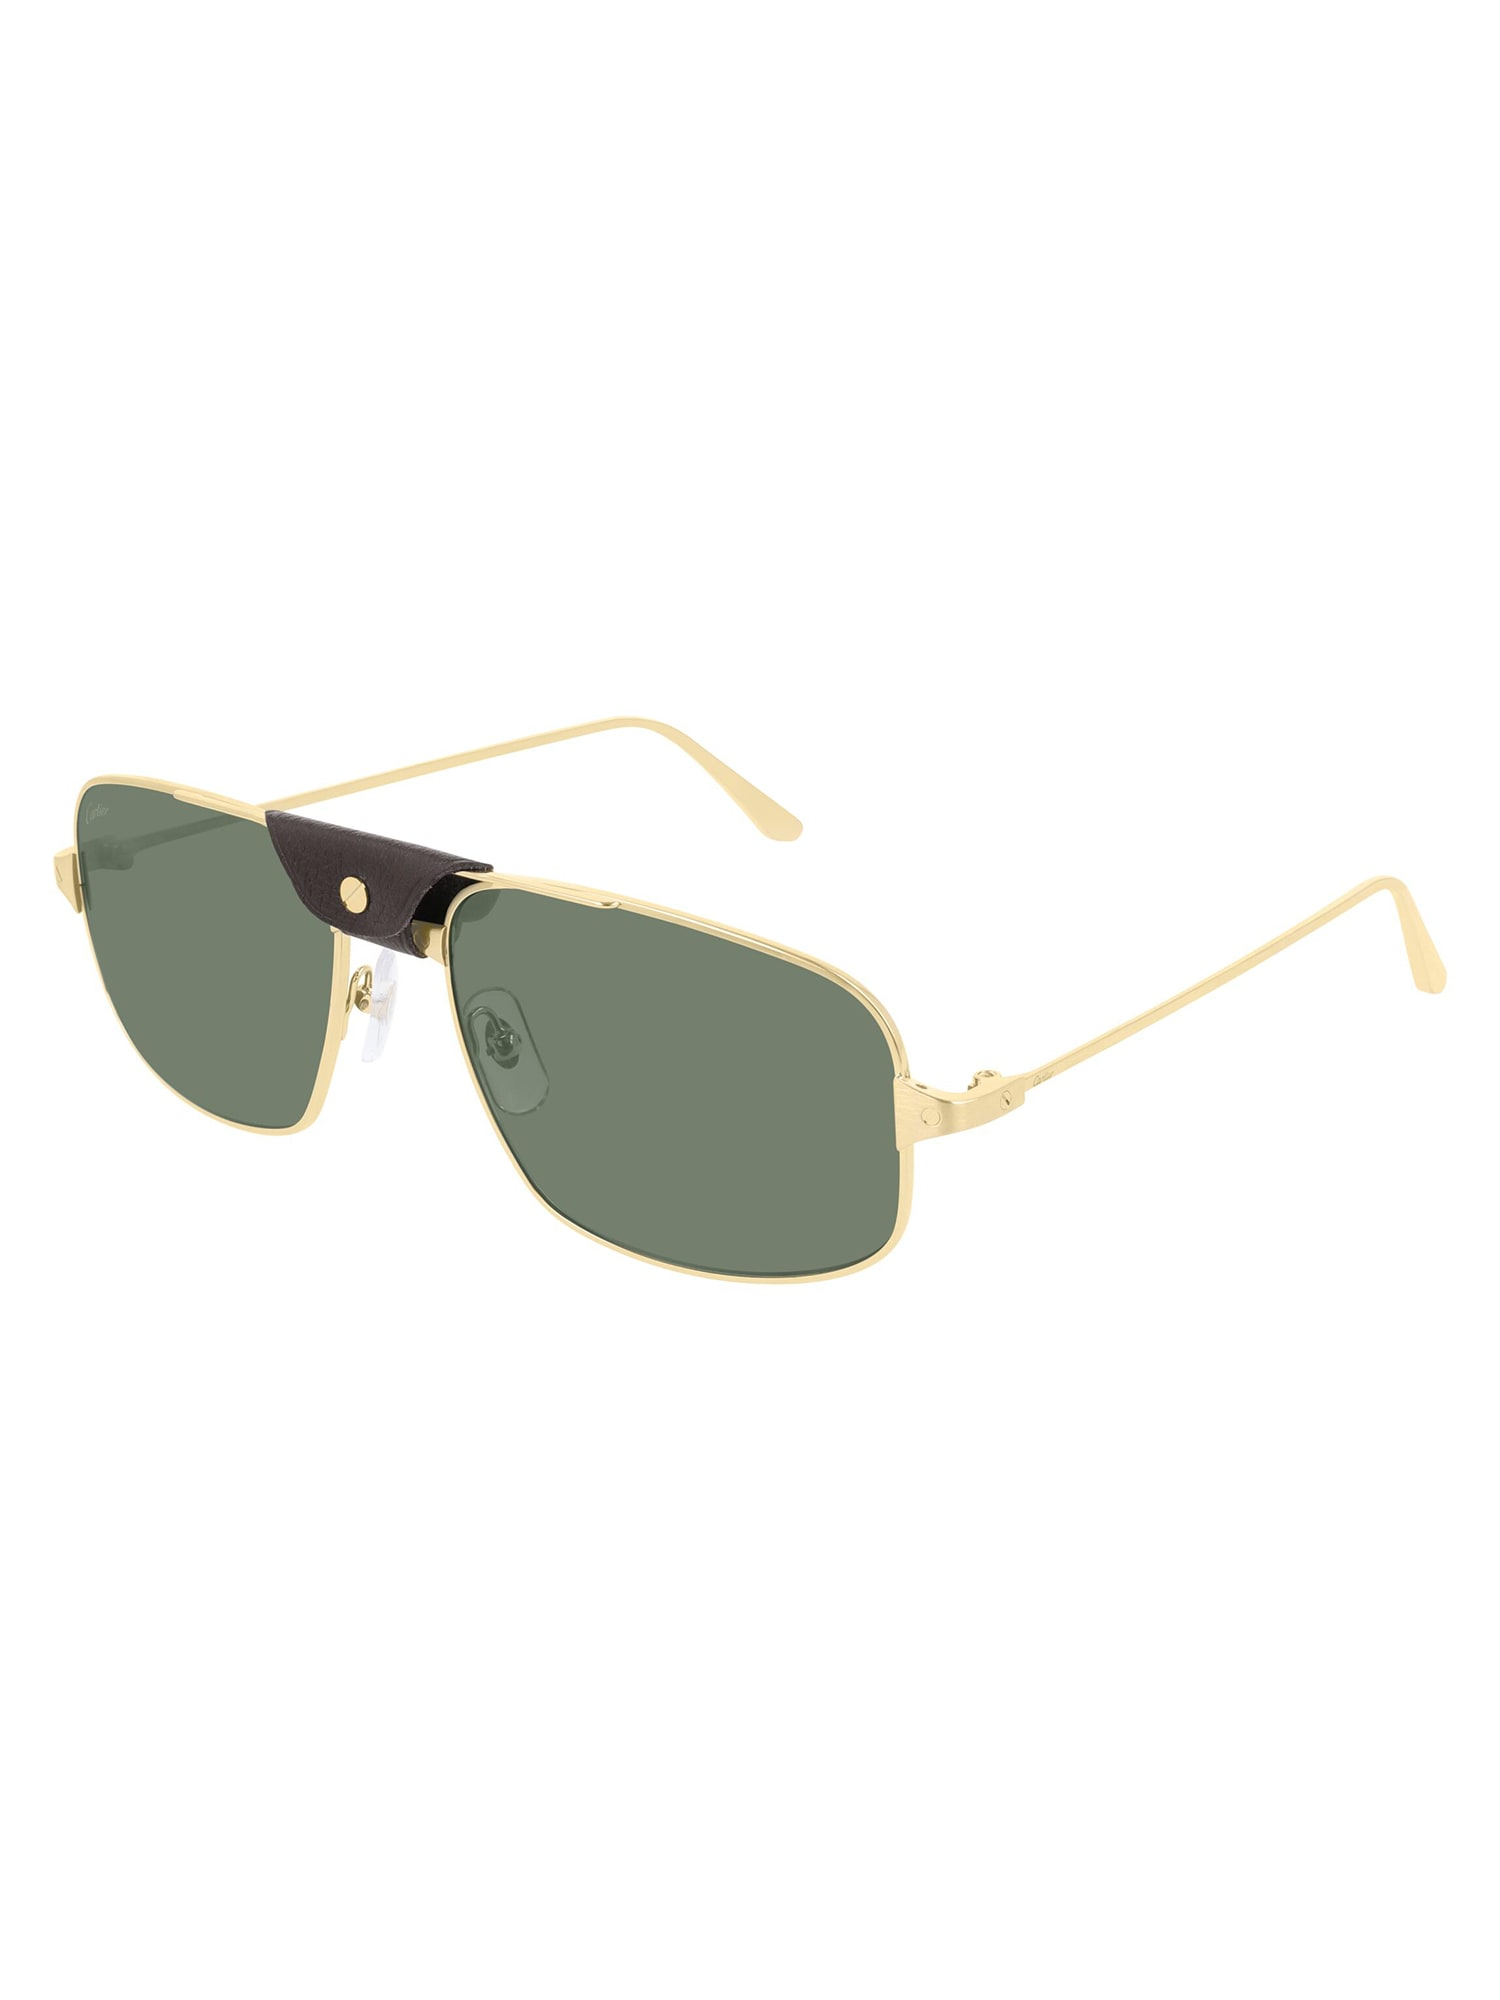 Cartier Eyewear CT0193S Sunglasses